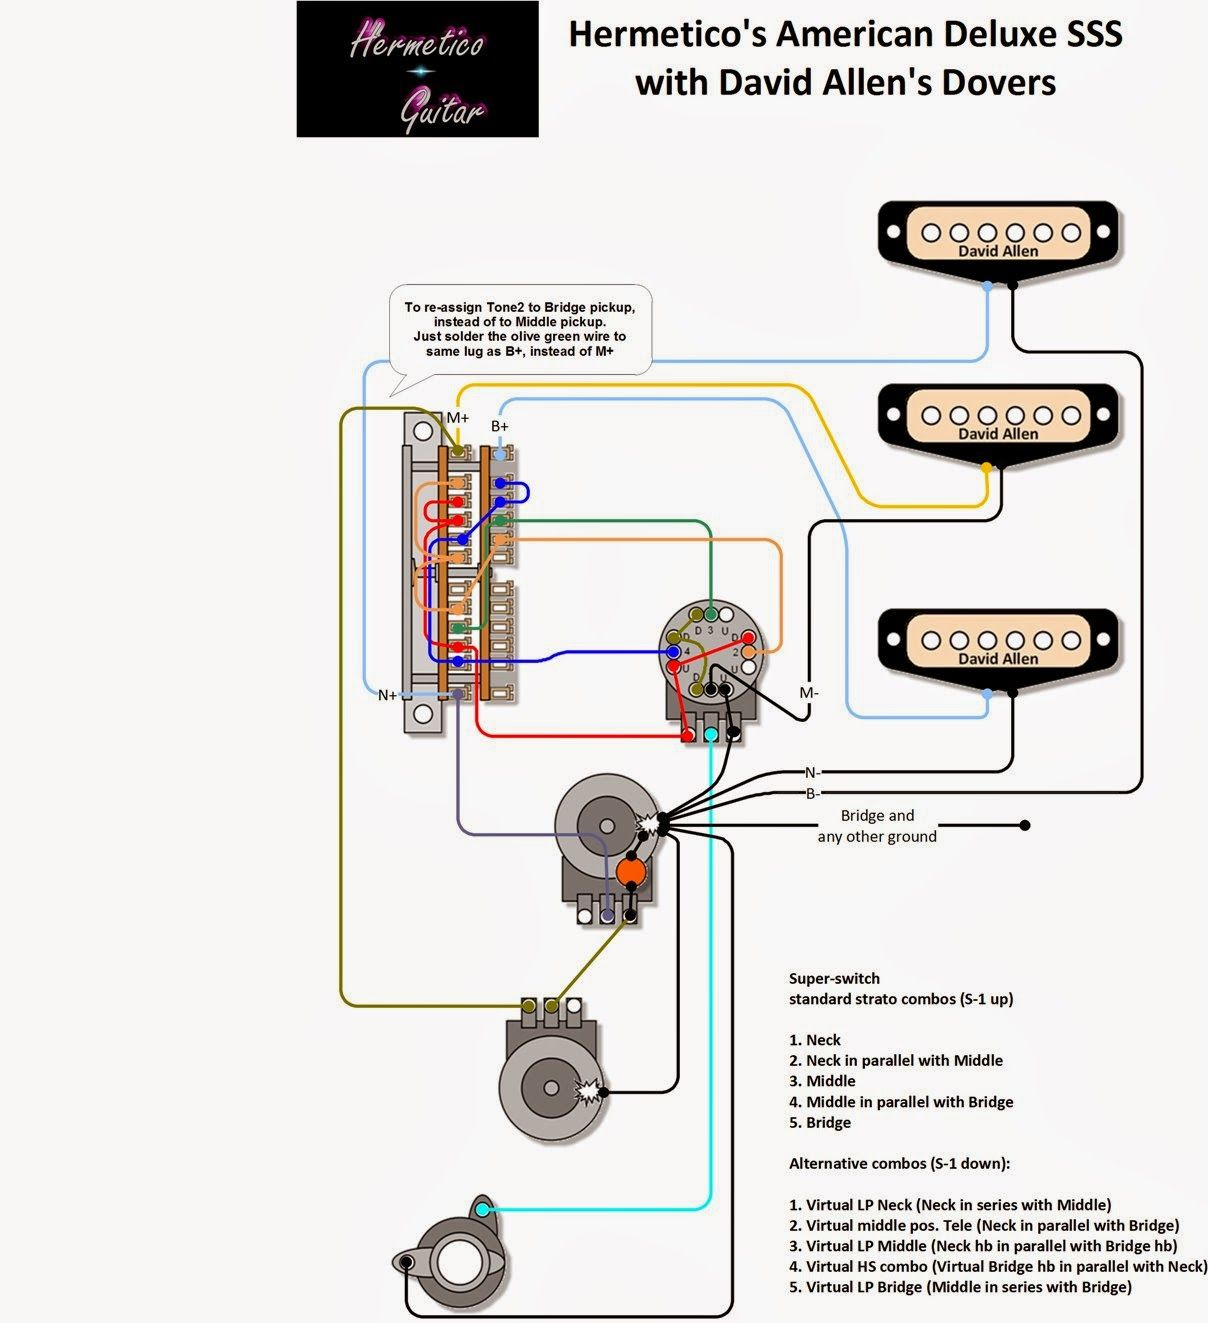 fender stratocaster 5 way switch wiring diagram 2002 pontiac grand prix jeff baxter strat google search guitar